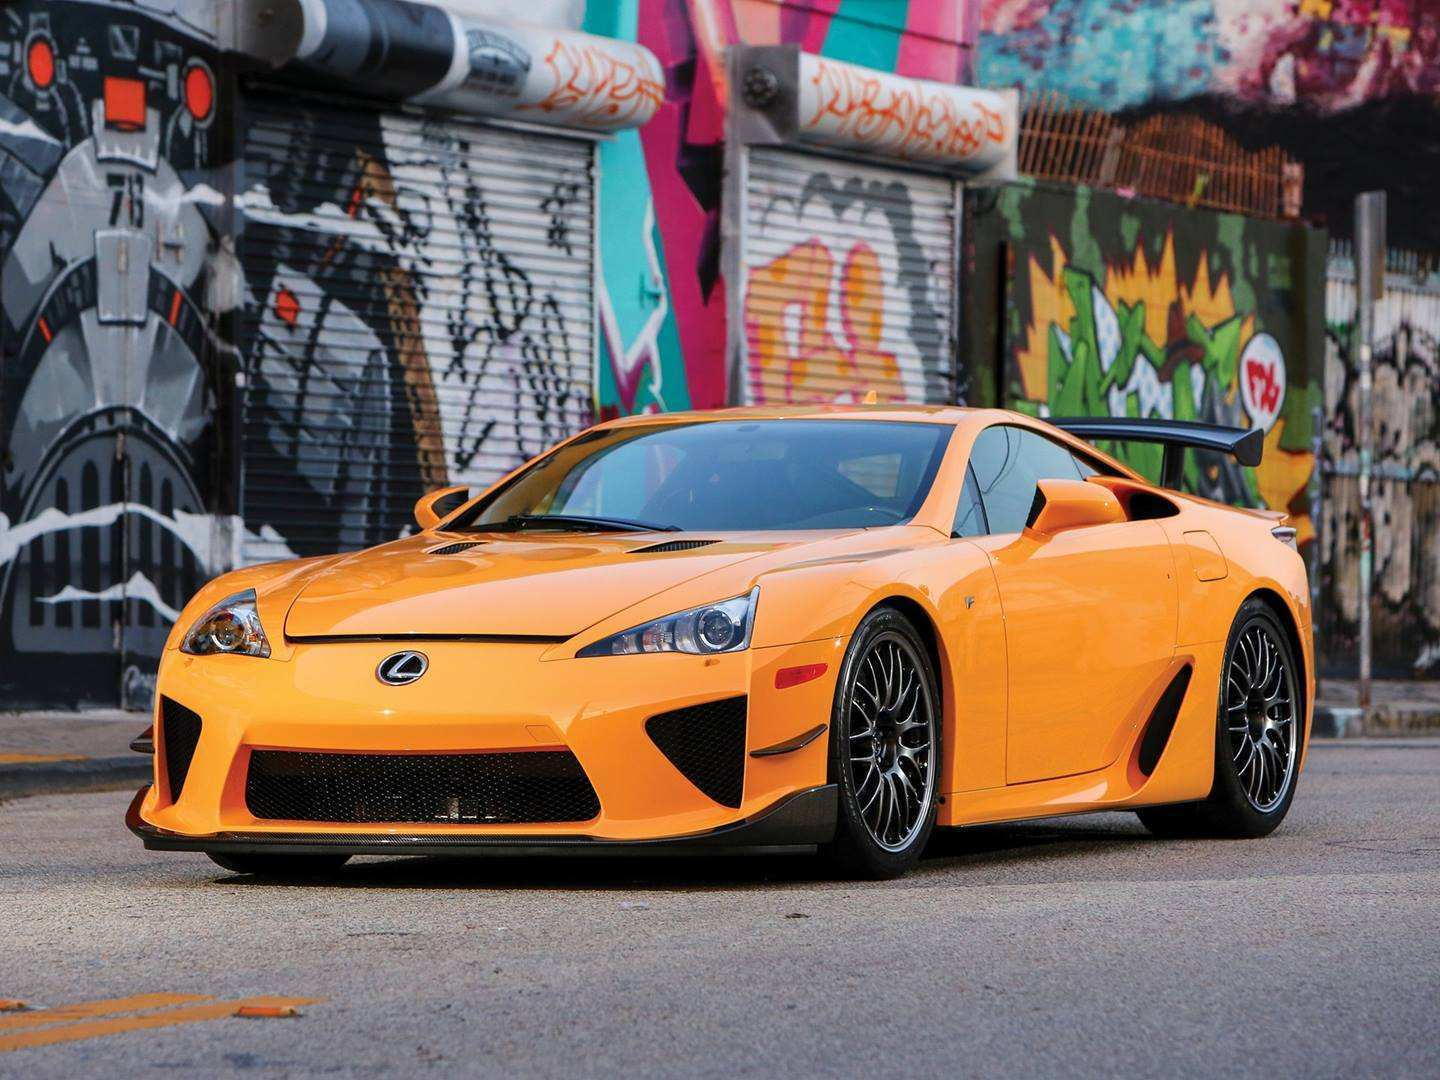 62 All New Lexus Lfa 2019 Price for Lexus Lfa 2019